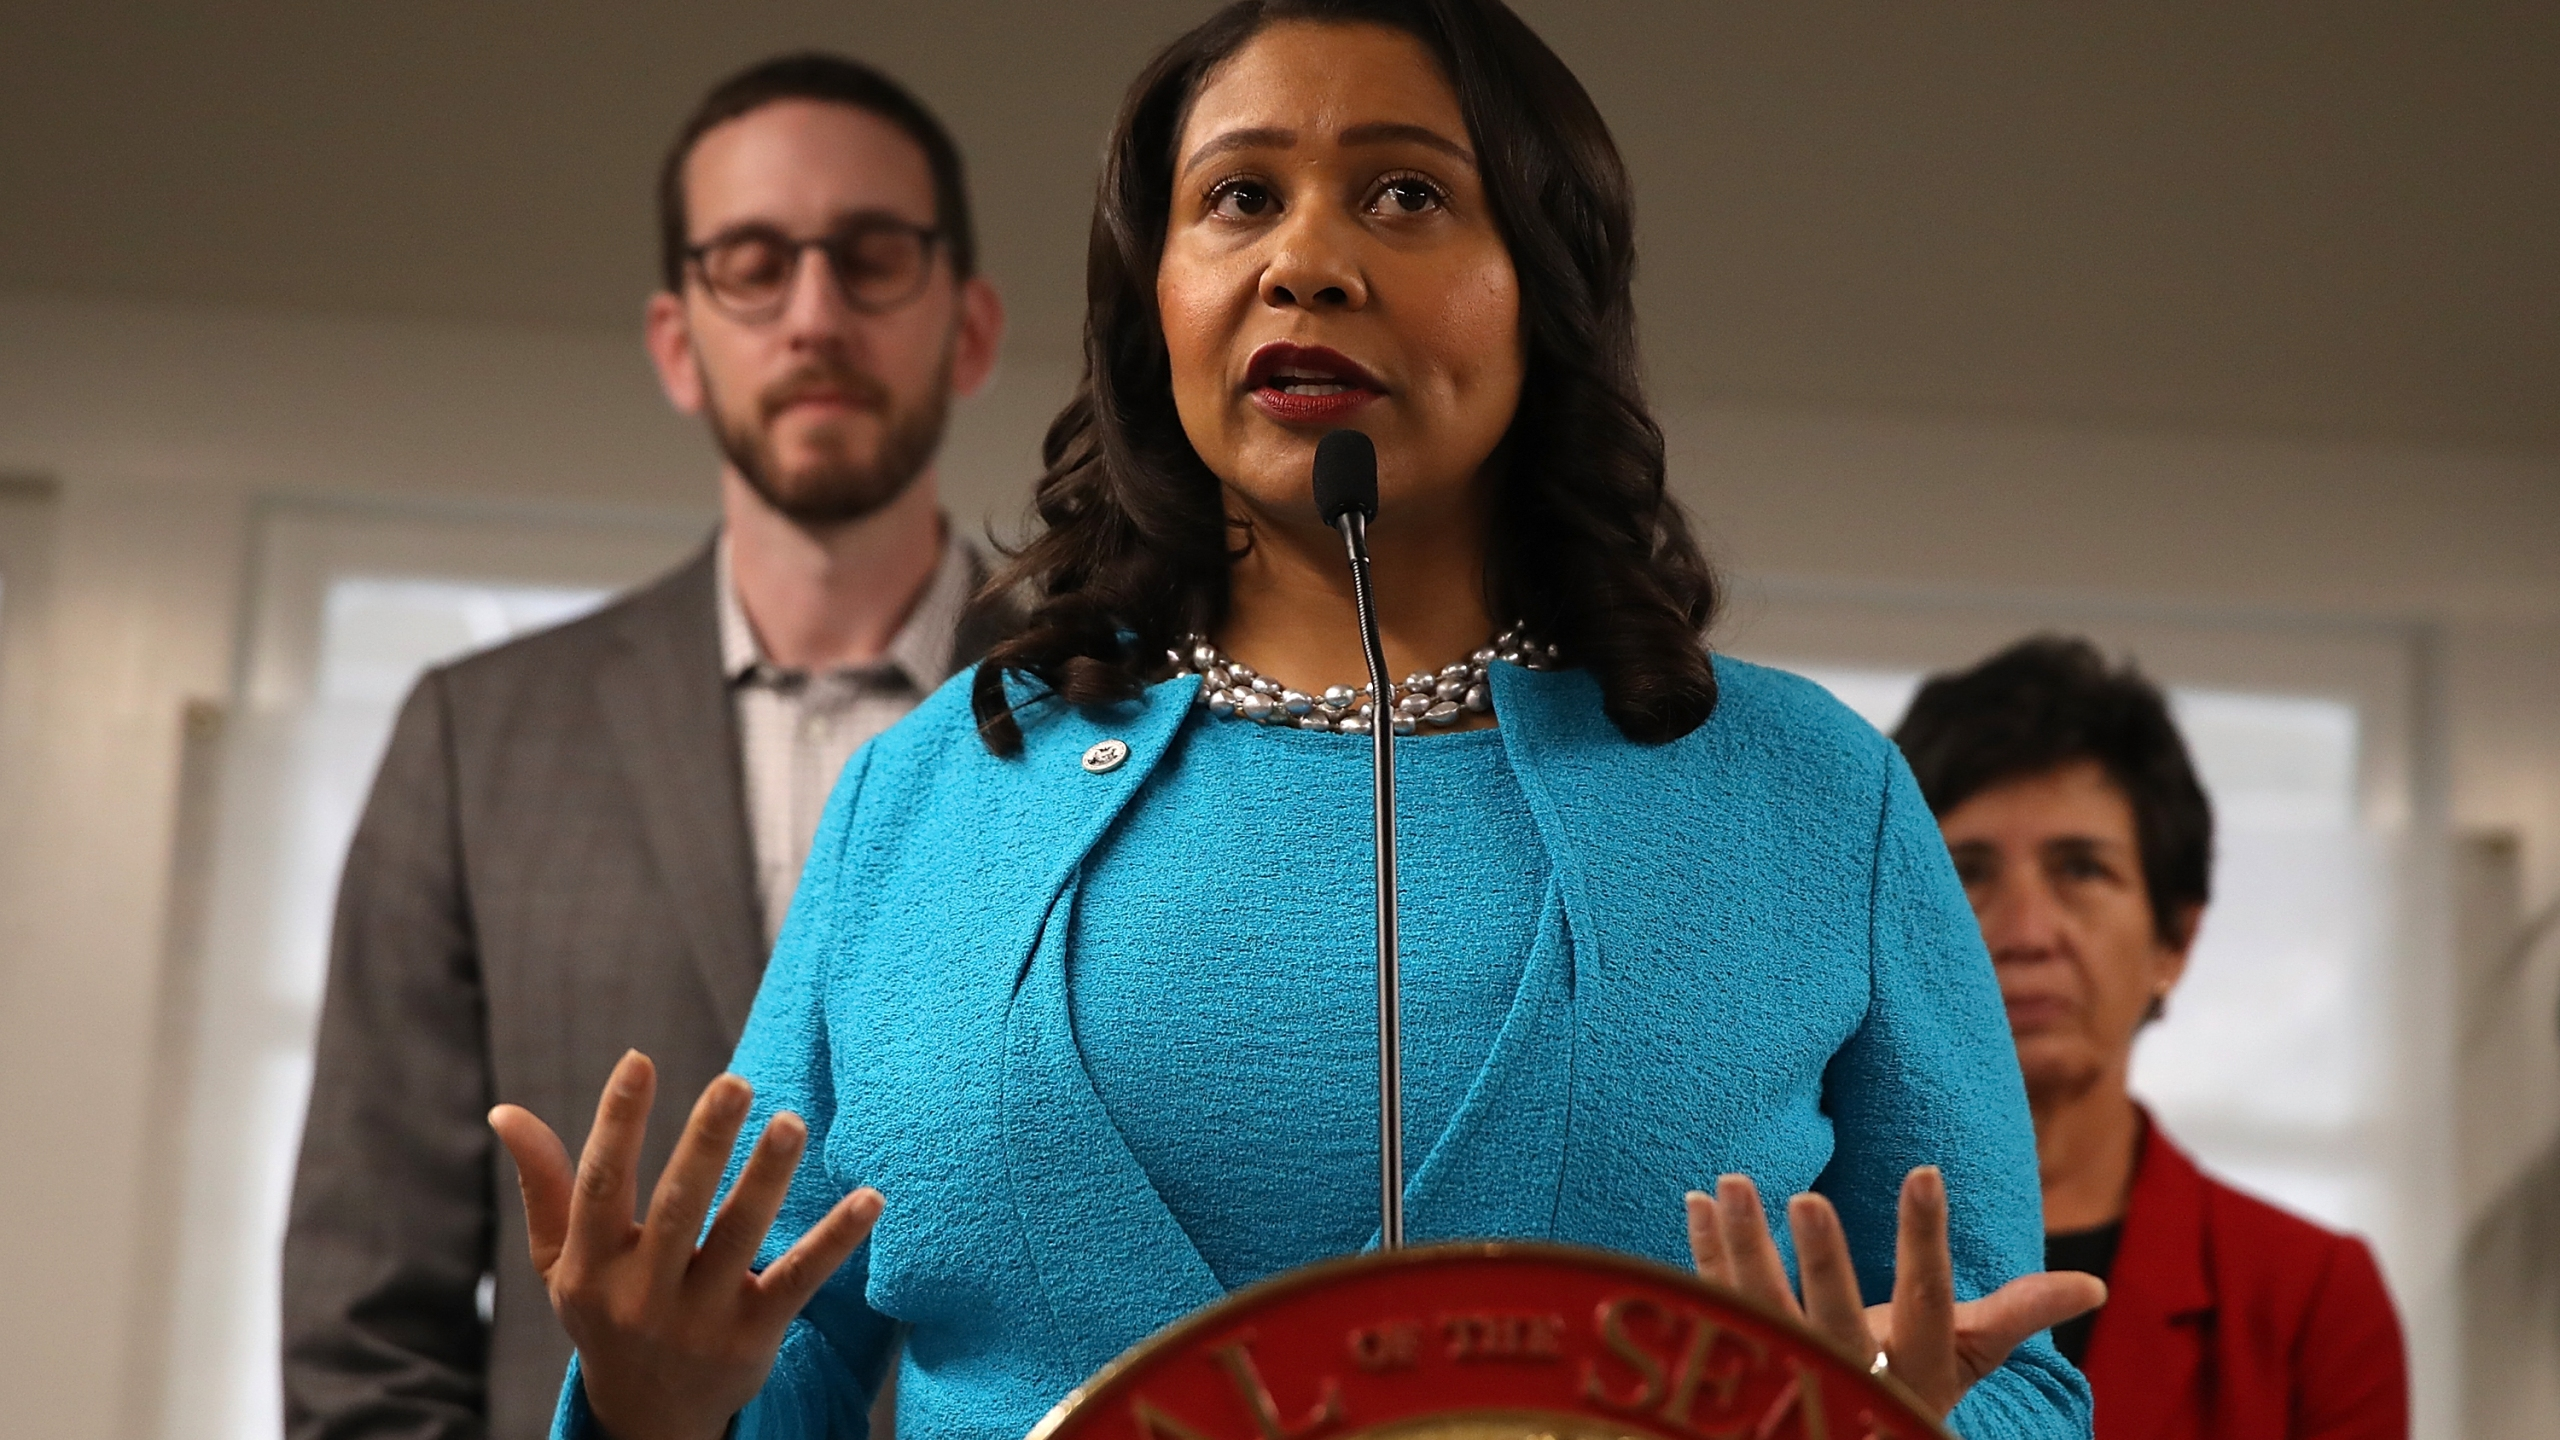 San Francisco mayor London Breed speaks during a news conference to show support for safe injection sites within city limits at HealthRIGHT 360 on Sept. 4, 2018 in San Francisco. (Credit: Justin Sullivan/Getty Images)